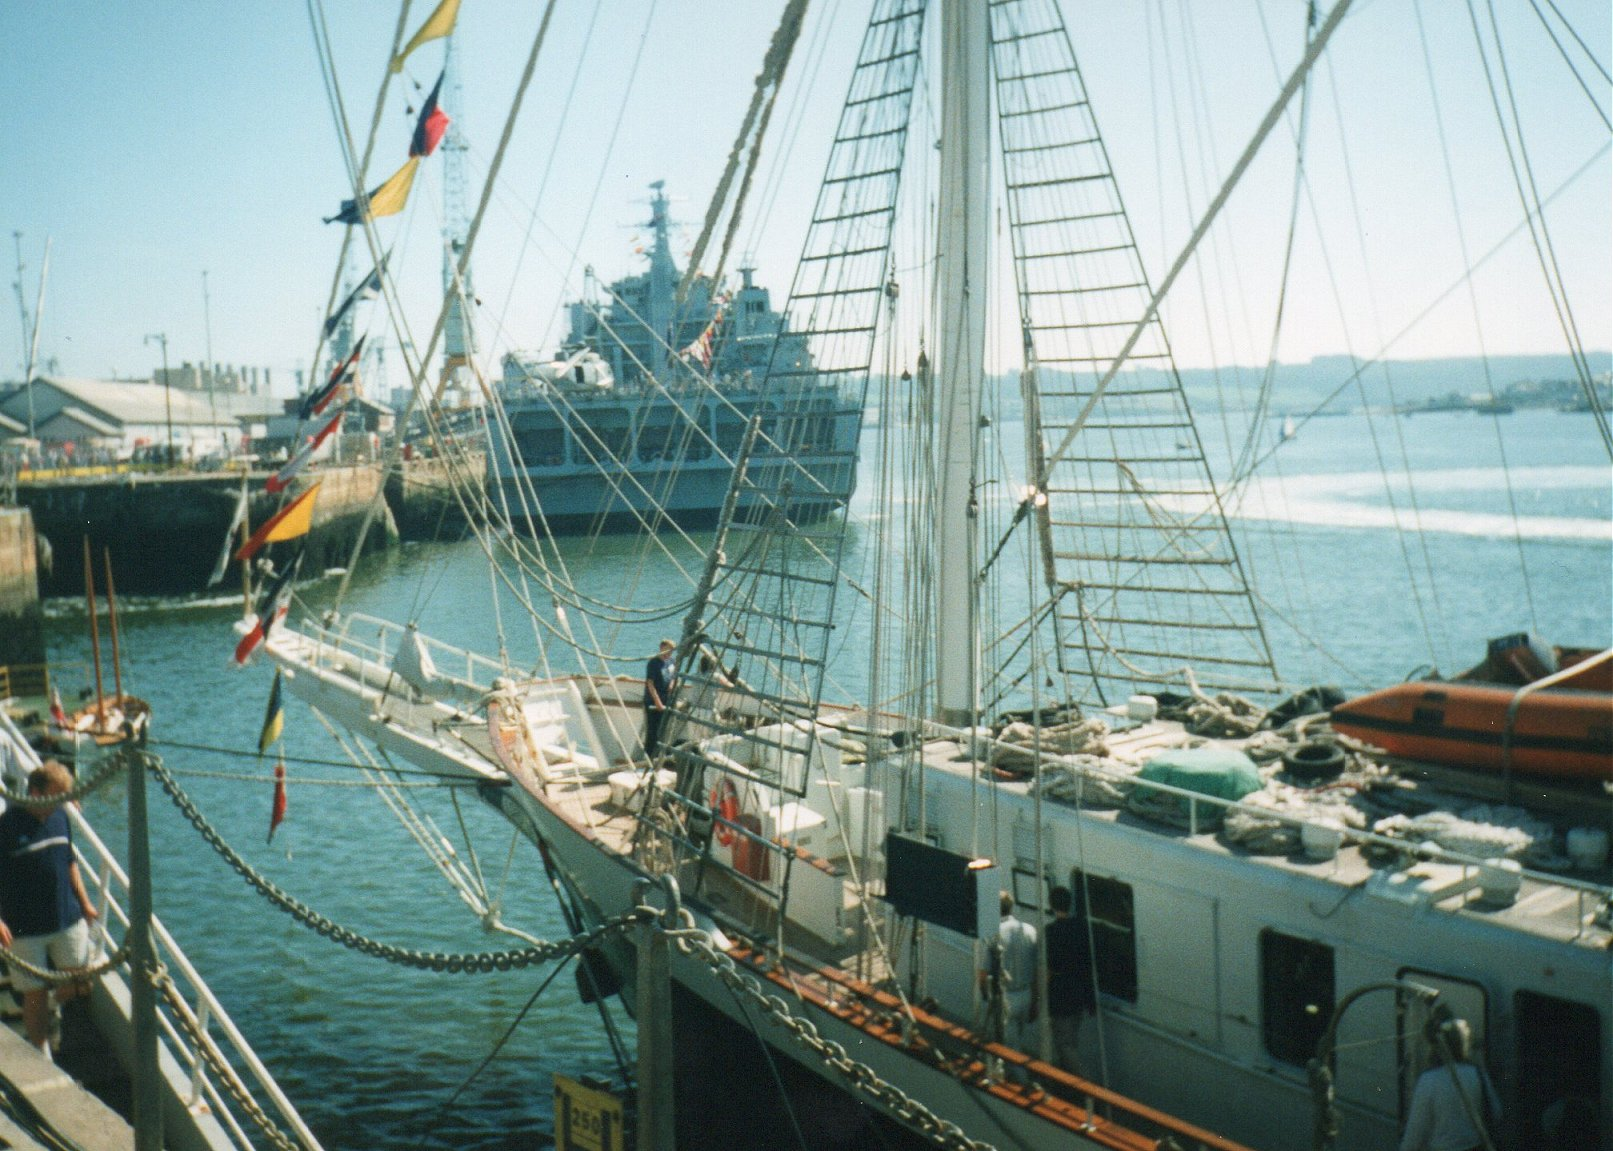 RFA Argus, primary casualty reception ship, Plymouth 1999.